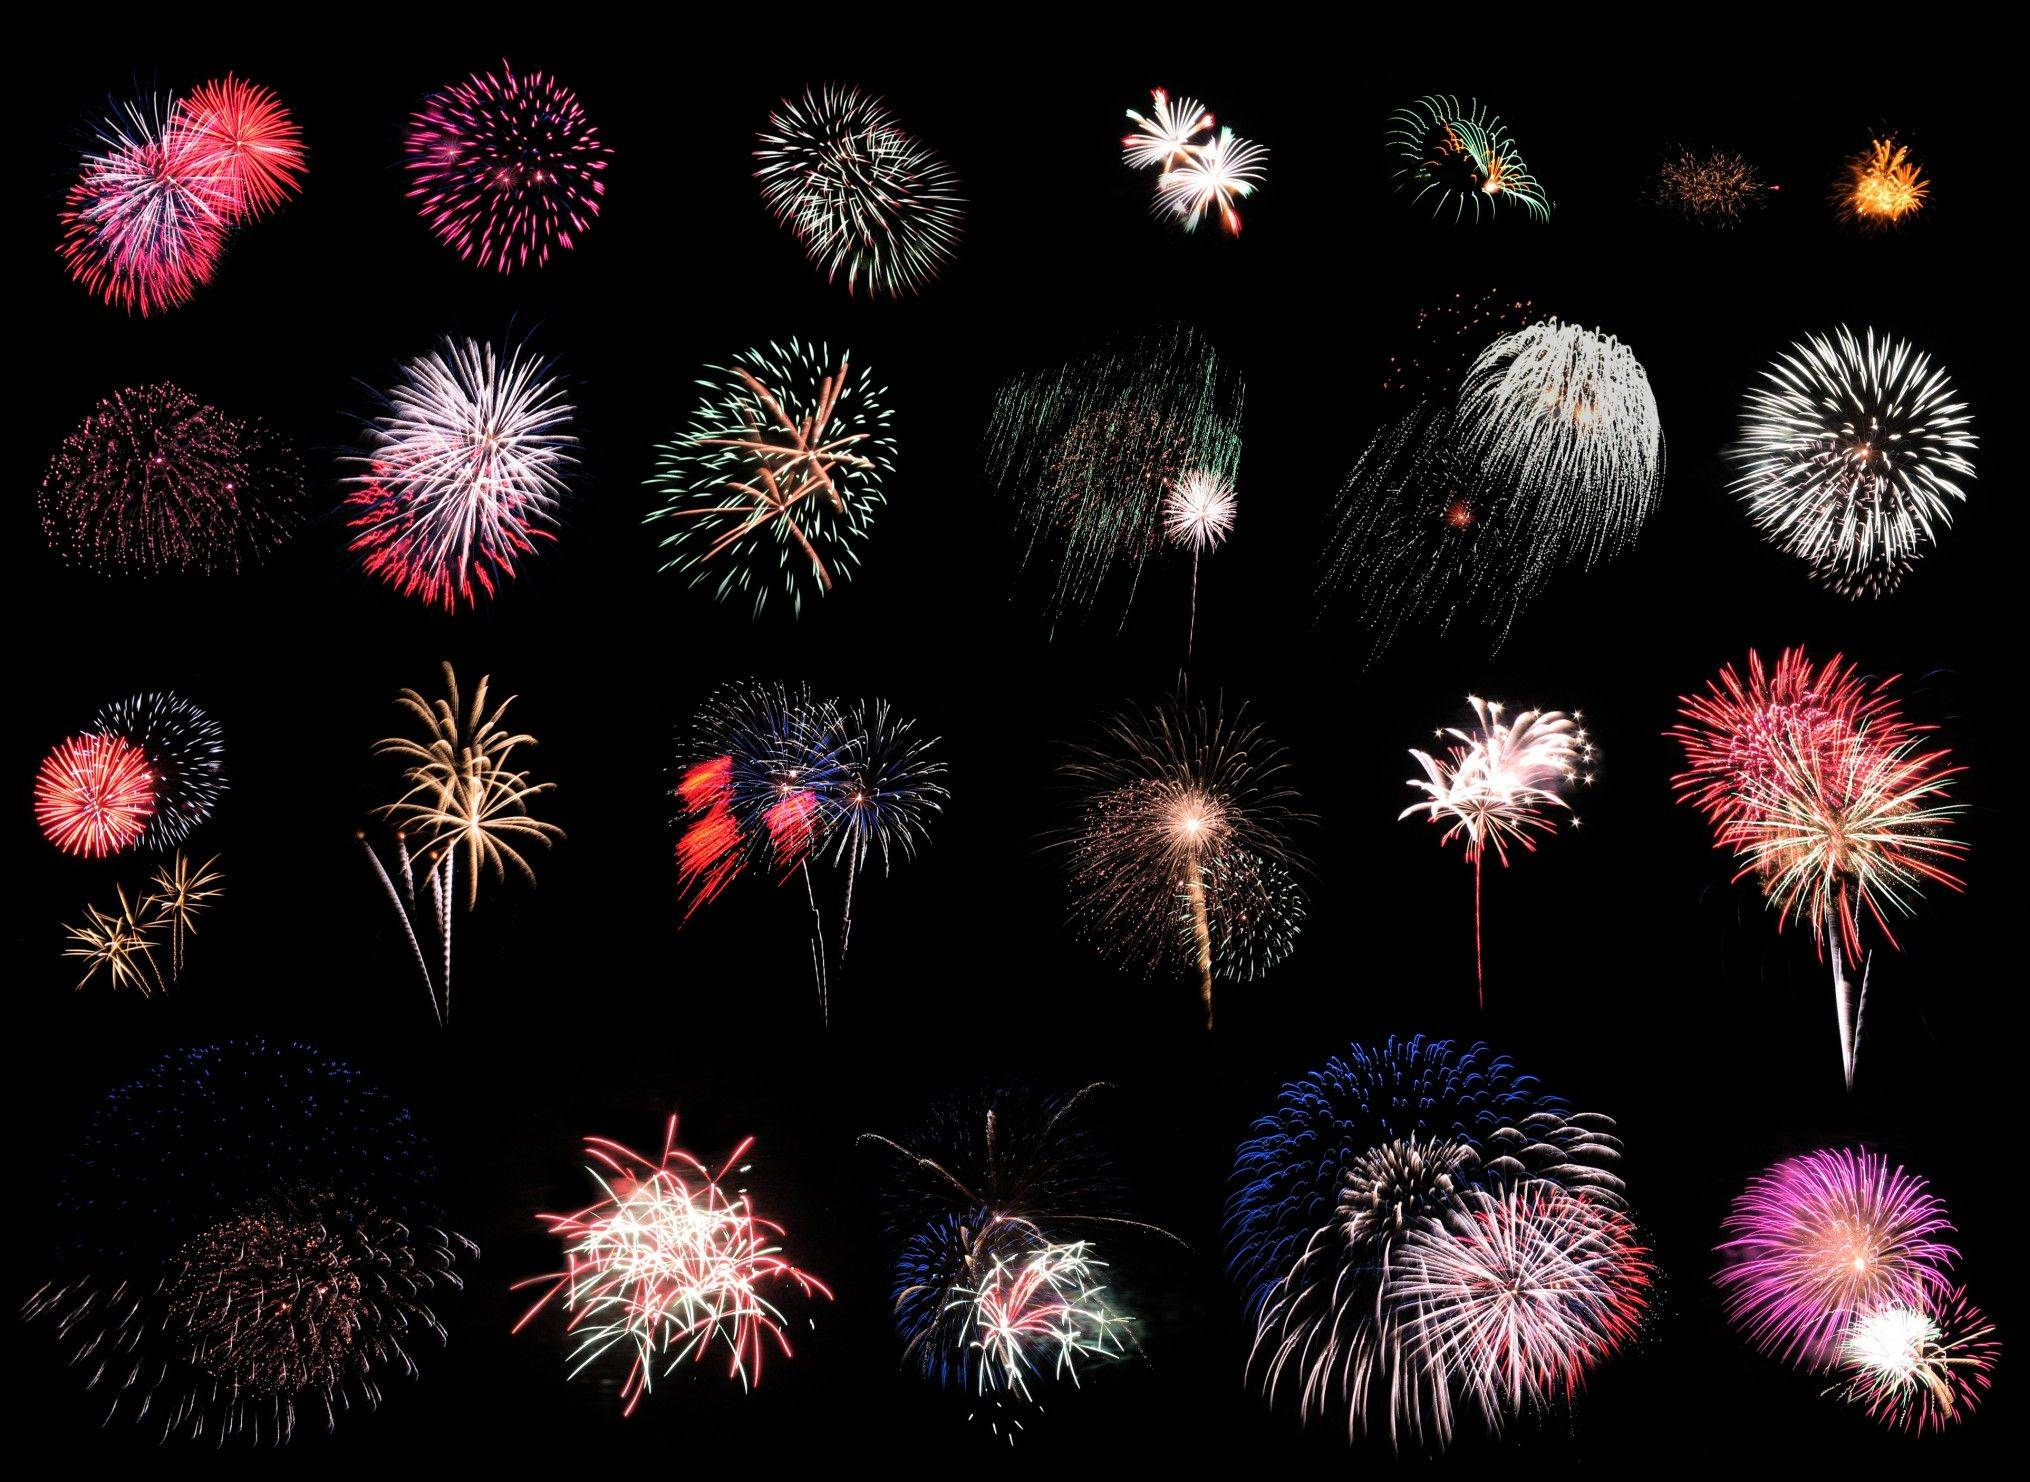 Colorful fireworks extravaganzas will take place in the suburbs to celebrate Independence Day.